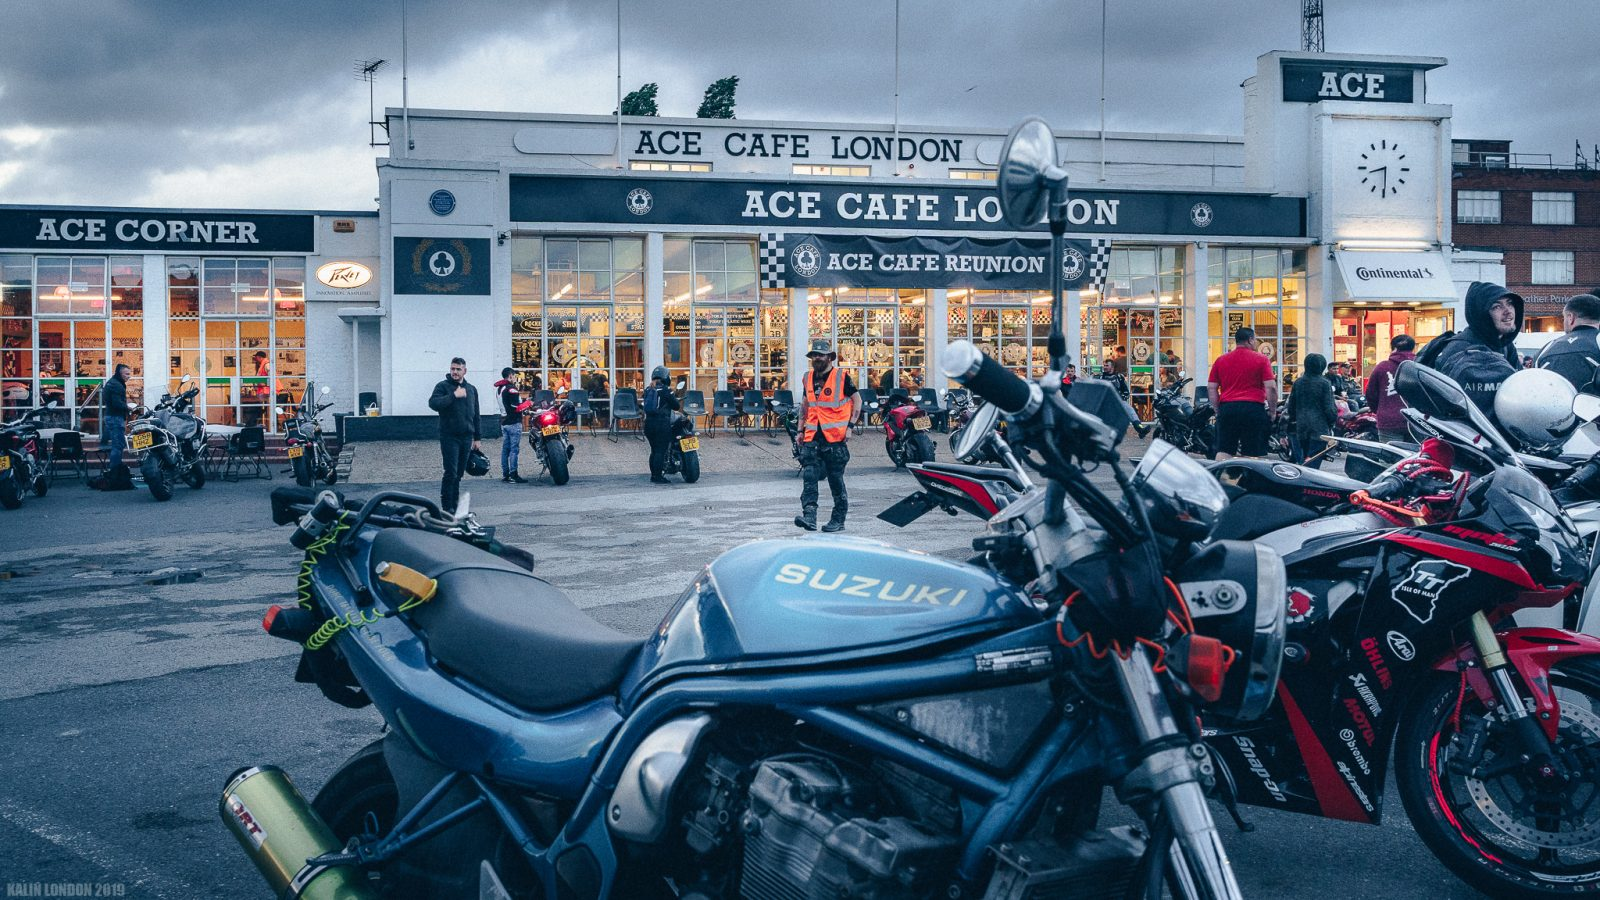 Ace Cafe London by KalinLondon